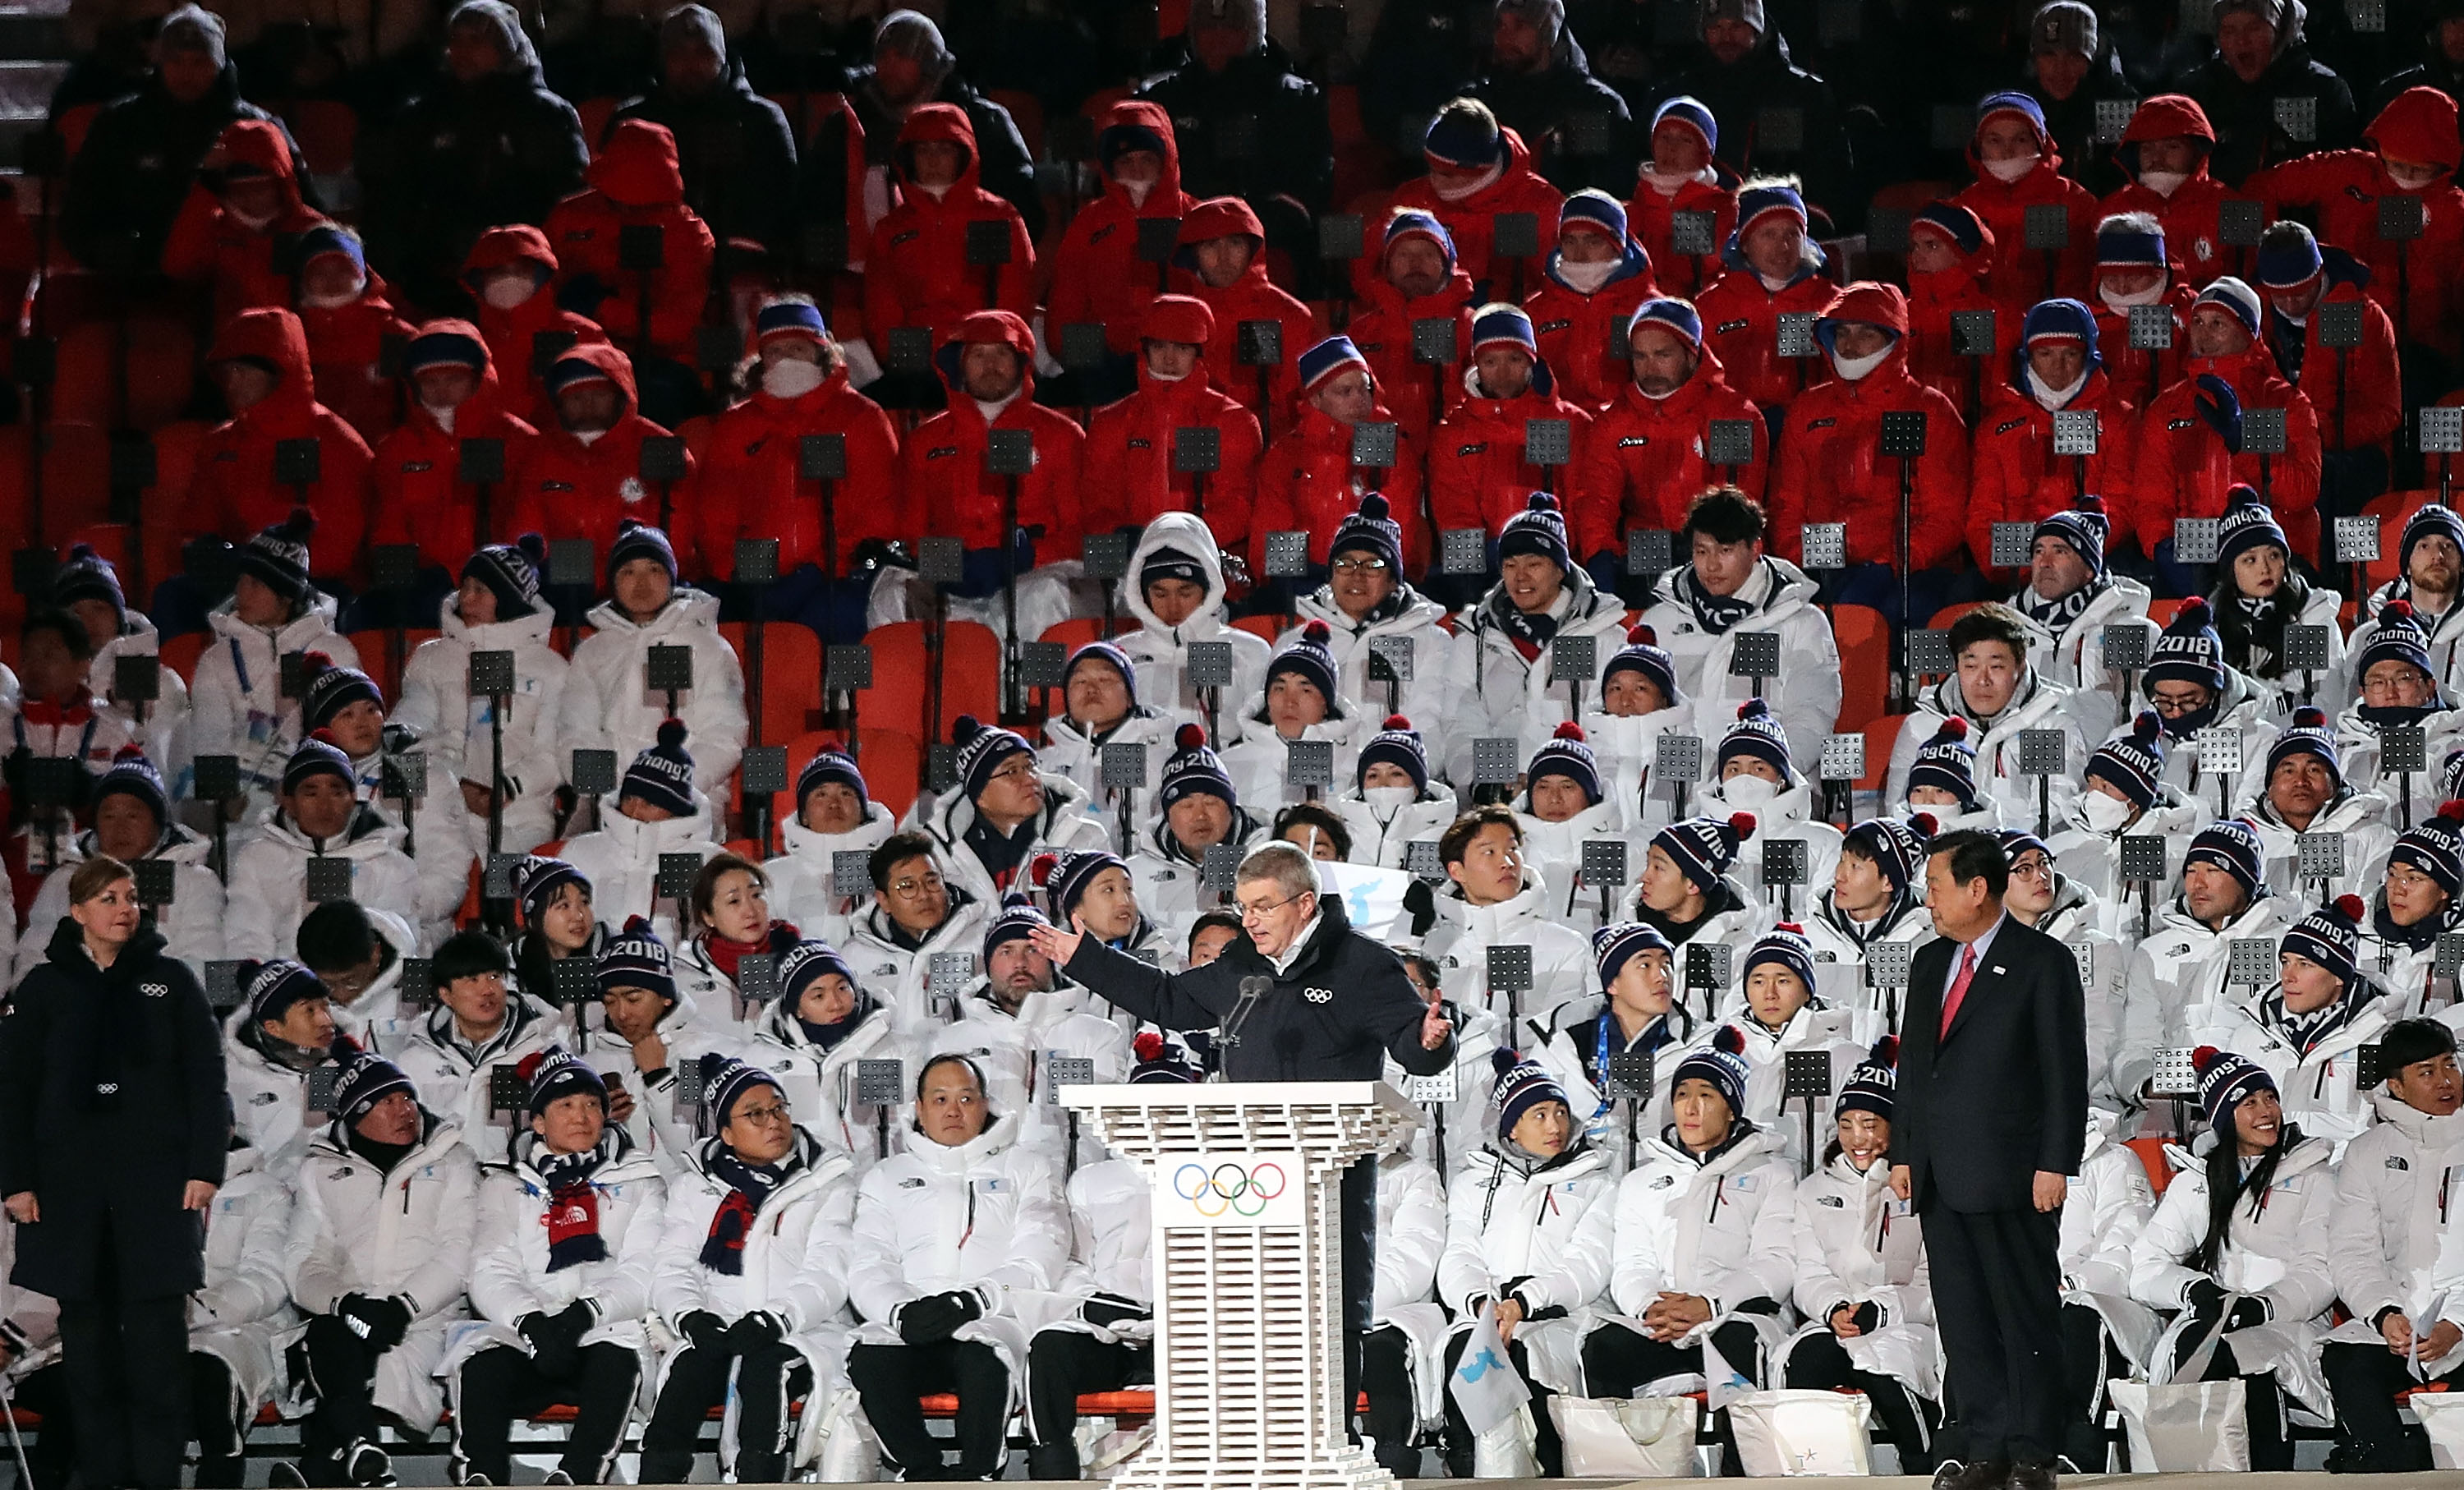 PYEONGCHANG-GUN, SOUTH KOREA - FEBRUARY 09:  IOC President Thomas Bach speaks during the Opening Ceremony of the PyeongChang 2018 Winter Olympic Games at PyeongChang Olympic Stadium on February 9, 2018 in Pyeongchang-gun, South Korea.  fee liable image, copyright © ATP  Amin JAMALI  XXIII. OLYMPIC WINTER GAMES PYEONGCHANG 2018: OPENING CEREMONY,  PyeongChang, Korea, Winter Olympics; PyeongChang Olympic Stadium, on 9. February 2018, fee liable image, copyright © ATP / Amin JAMALI  Featuring: IOC President Thomas Bach speaks Where: Pyeongchang, Gangwon Province, South Korea When: 09 Feb 2018 Credit: ATP/WENN.com  **Not available for publication in Germany or France. No Contact Music.**